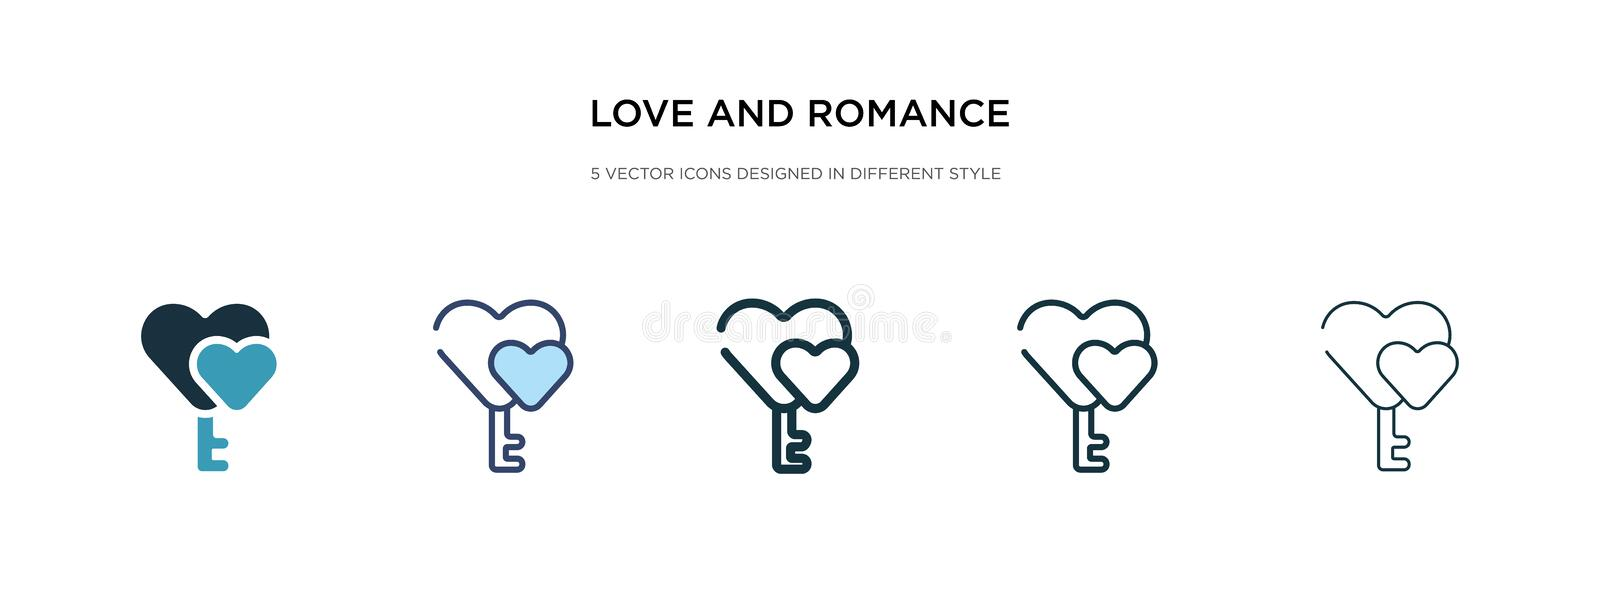 Love and romance icon in different style vector illustration. two colored and black love and romance vector icons designed in royalty free illustration